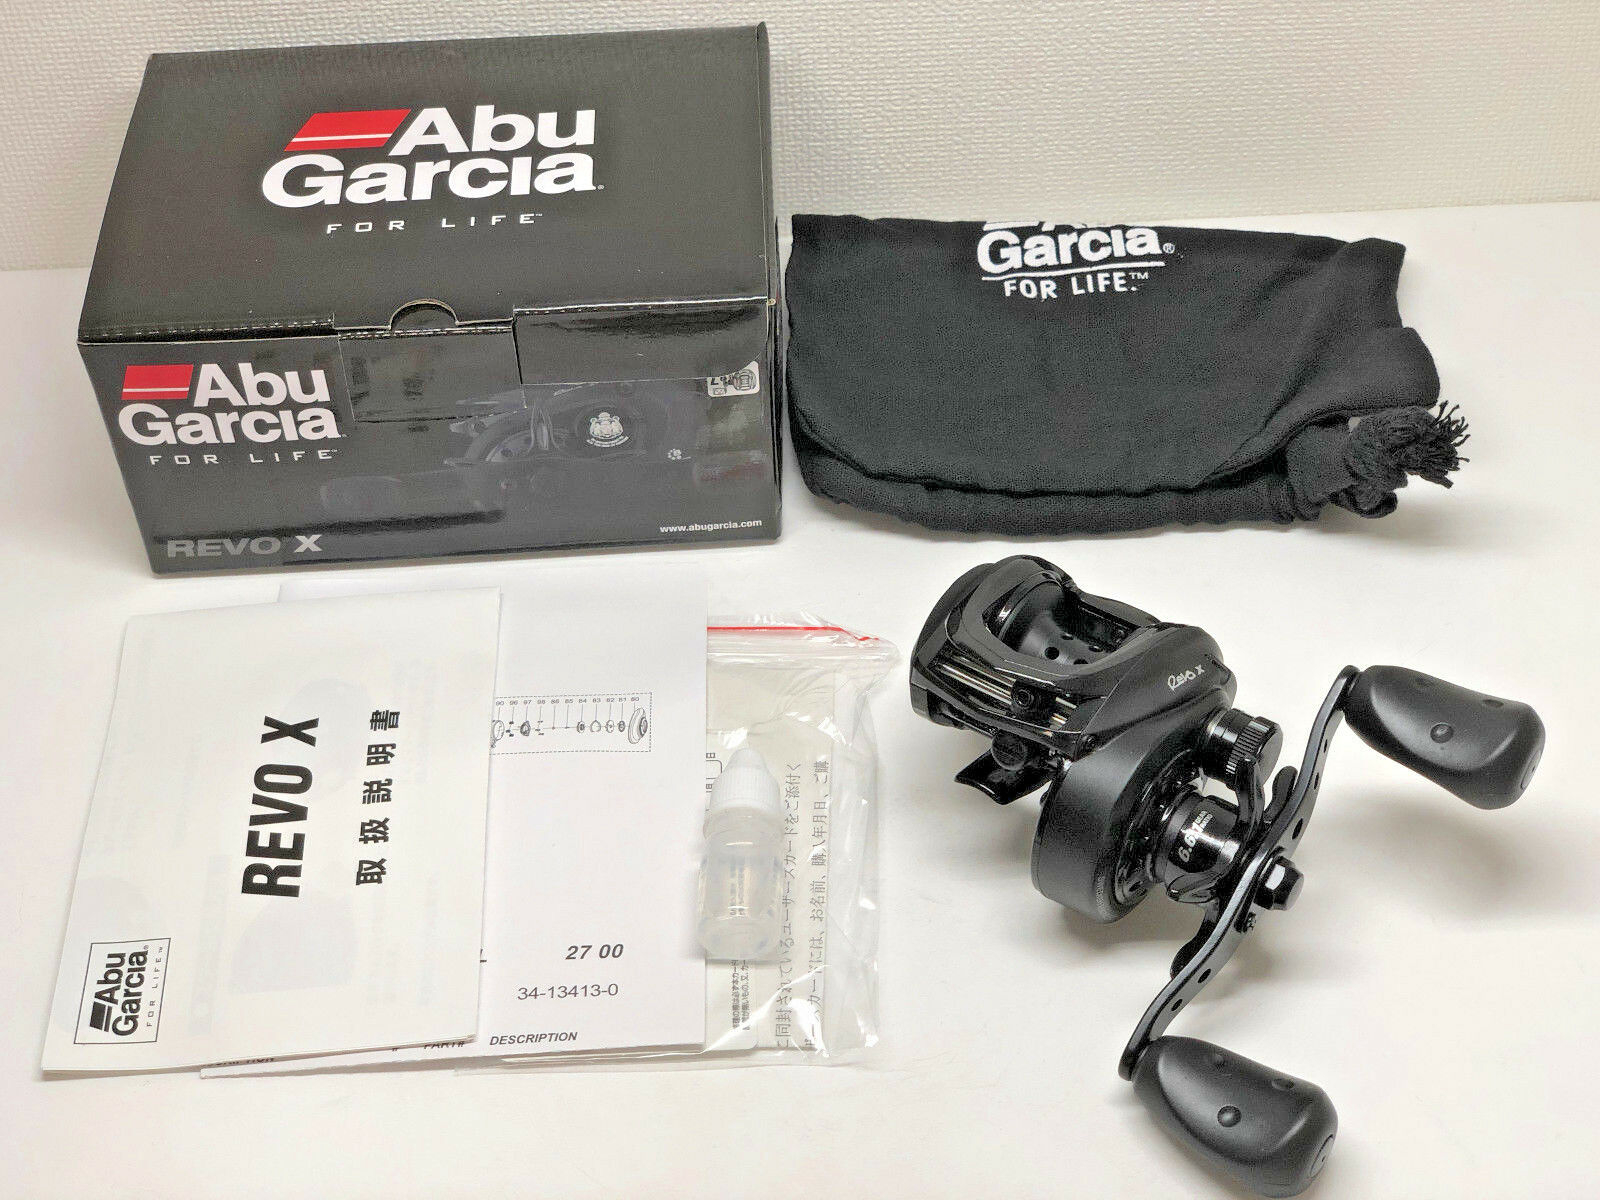 Abu Garcia Revo XL Left   Free Shipping from Japan